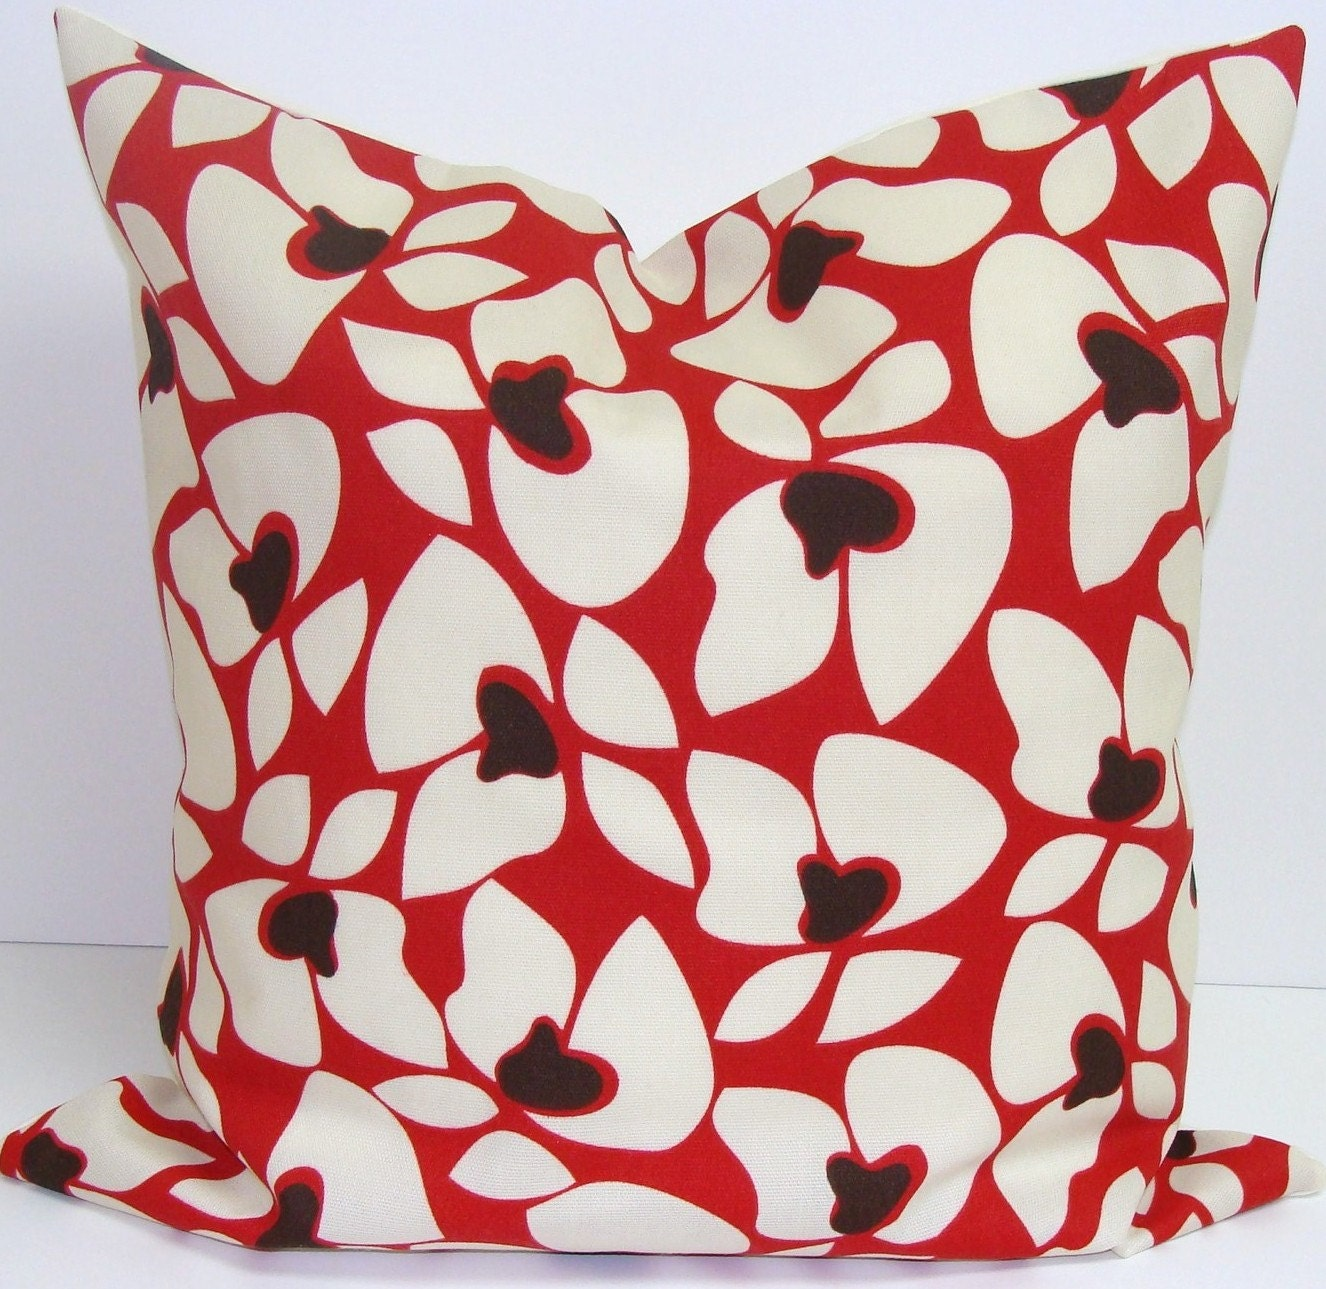 RED OUTDOOR PILLOW.16x16 inch.Pillow Cover. Decorative Pillow